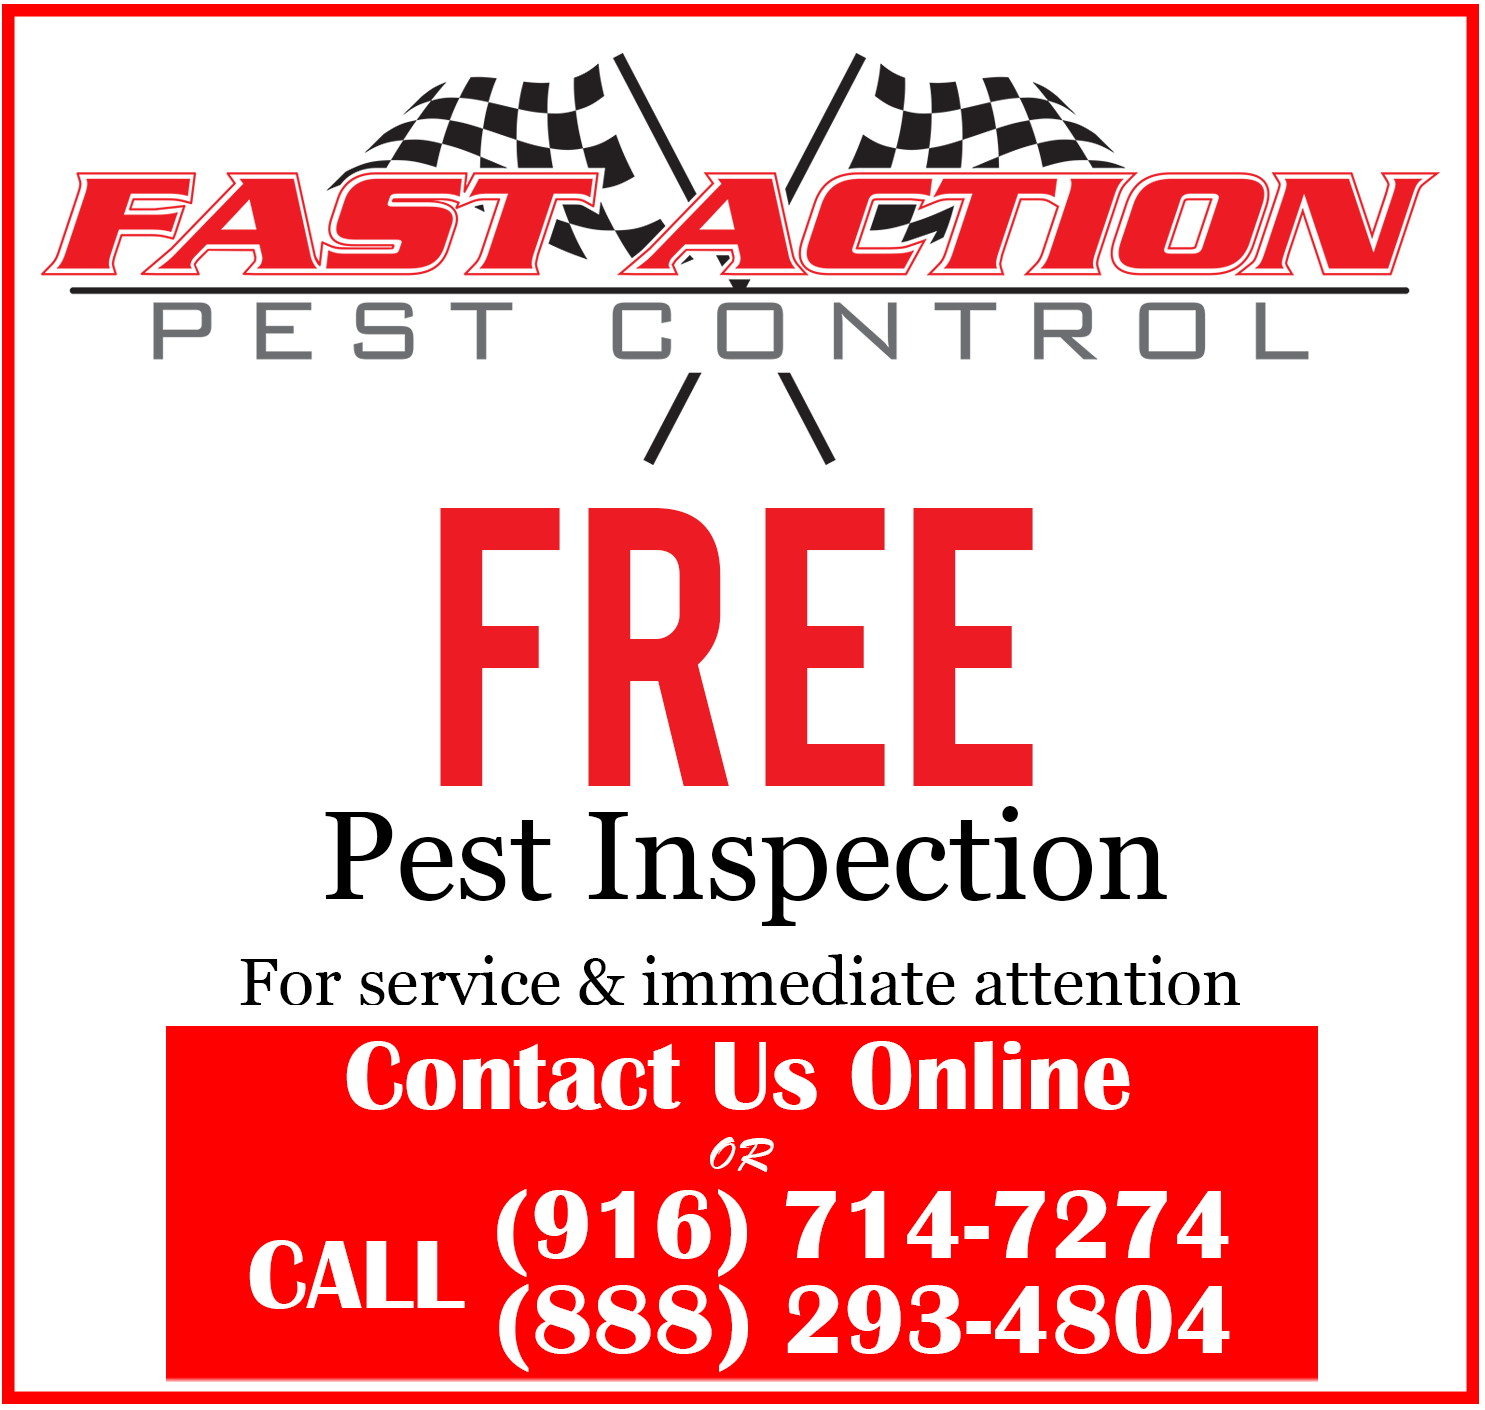 Fast Action Pest Control. Elk Grove Insect & Rodent Exterminators. Top Rated Pest Service, Best Pest Control Company in Elk Grove, CA. & surrounding